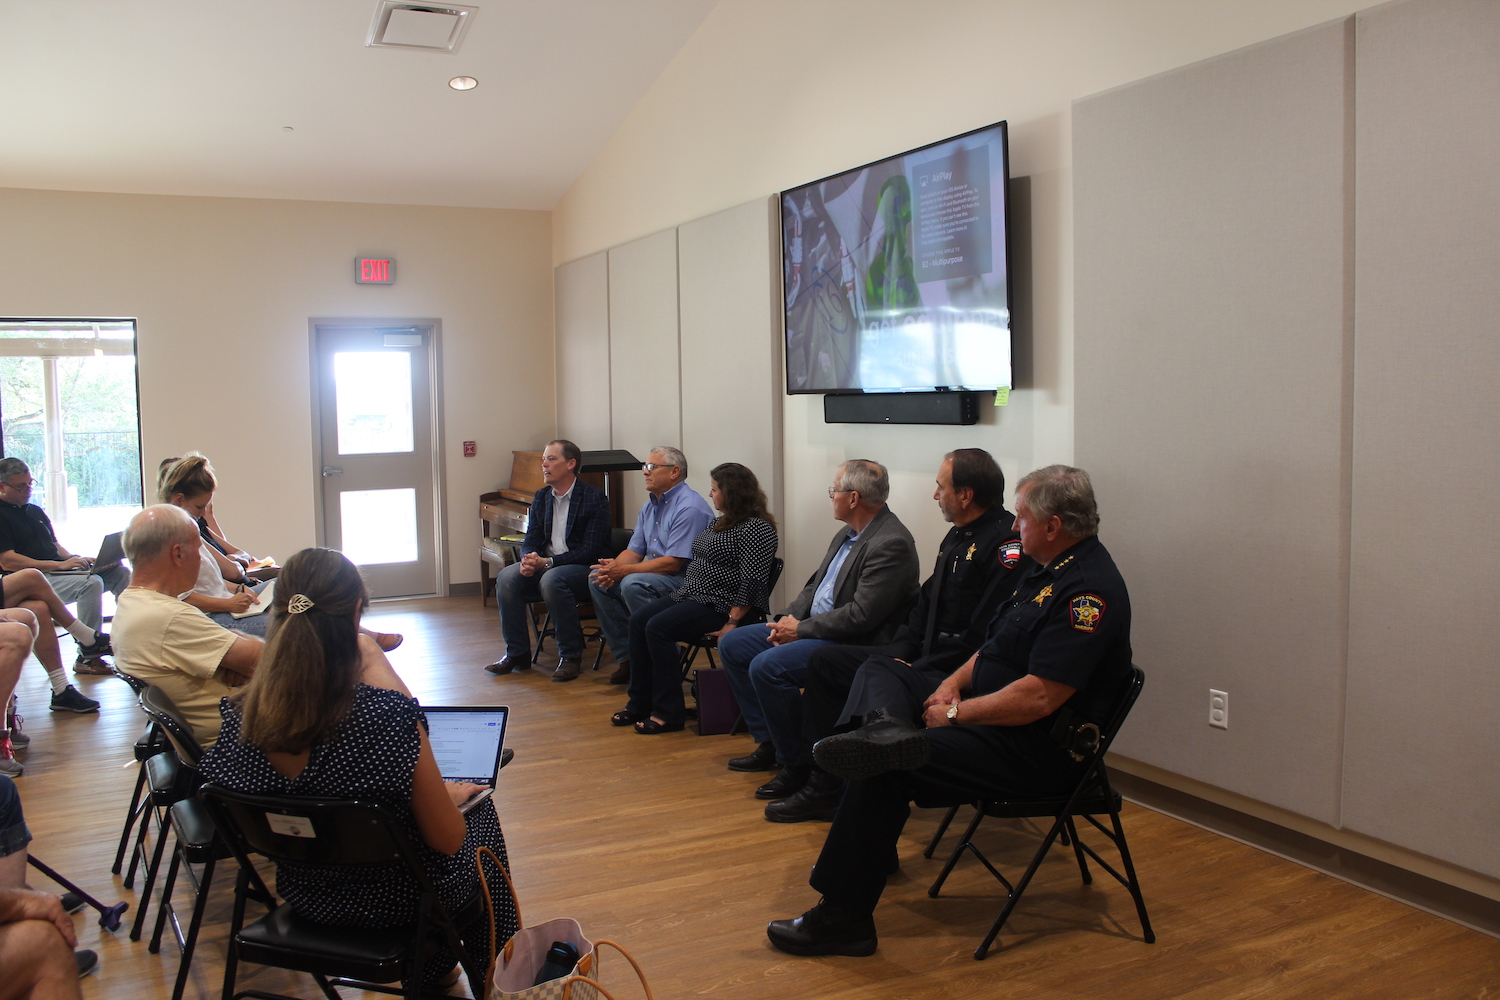 Community seeks answers to Hwy. 290 safety issues - Smith hosted a panel at Sunset Canyon Baptist Church on June 17 to discuss overall safety concerns on Hwy. 290. Panelists included Dripping Springs Mayor Pro Tem Bill Foulds, TxDOT Assistant Area Engineer Michelle Romage-Chambers, Hays County Precinct 4 Justice of the Peace John Burns, Precinct 4 Constable Ron Hood and Hays County Sheriff Gary Cutler. Numerous community members, including Sarah Kline, were also in attendance.